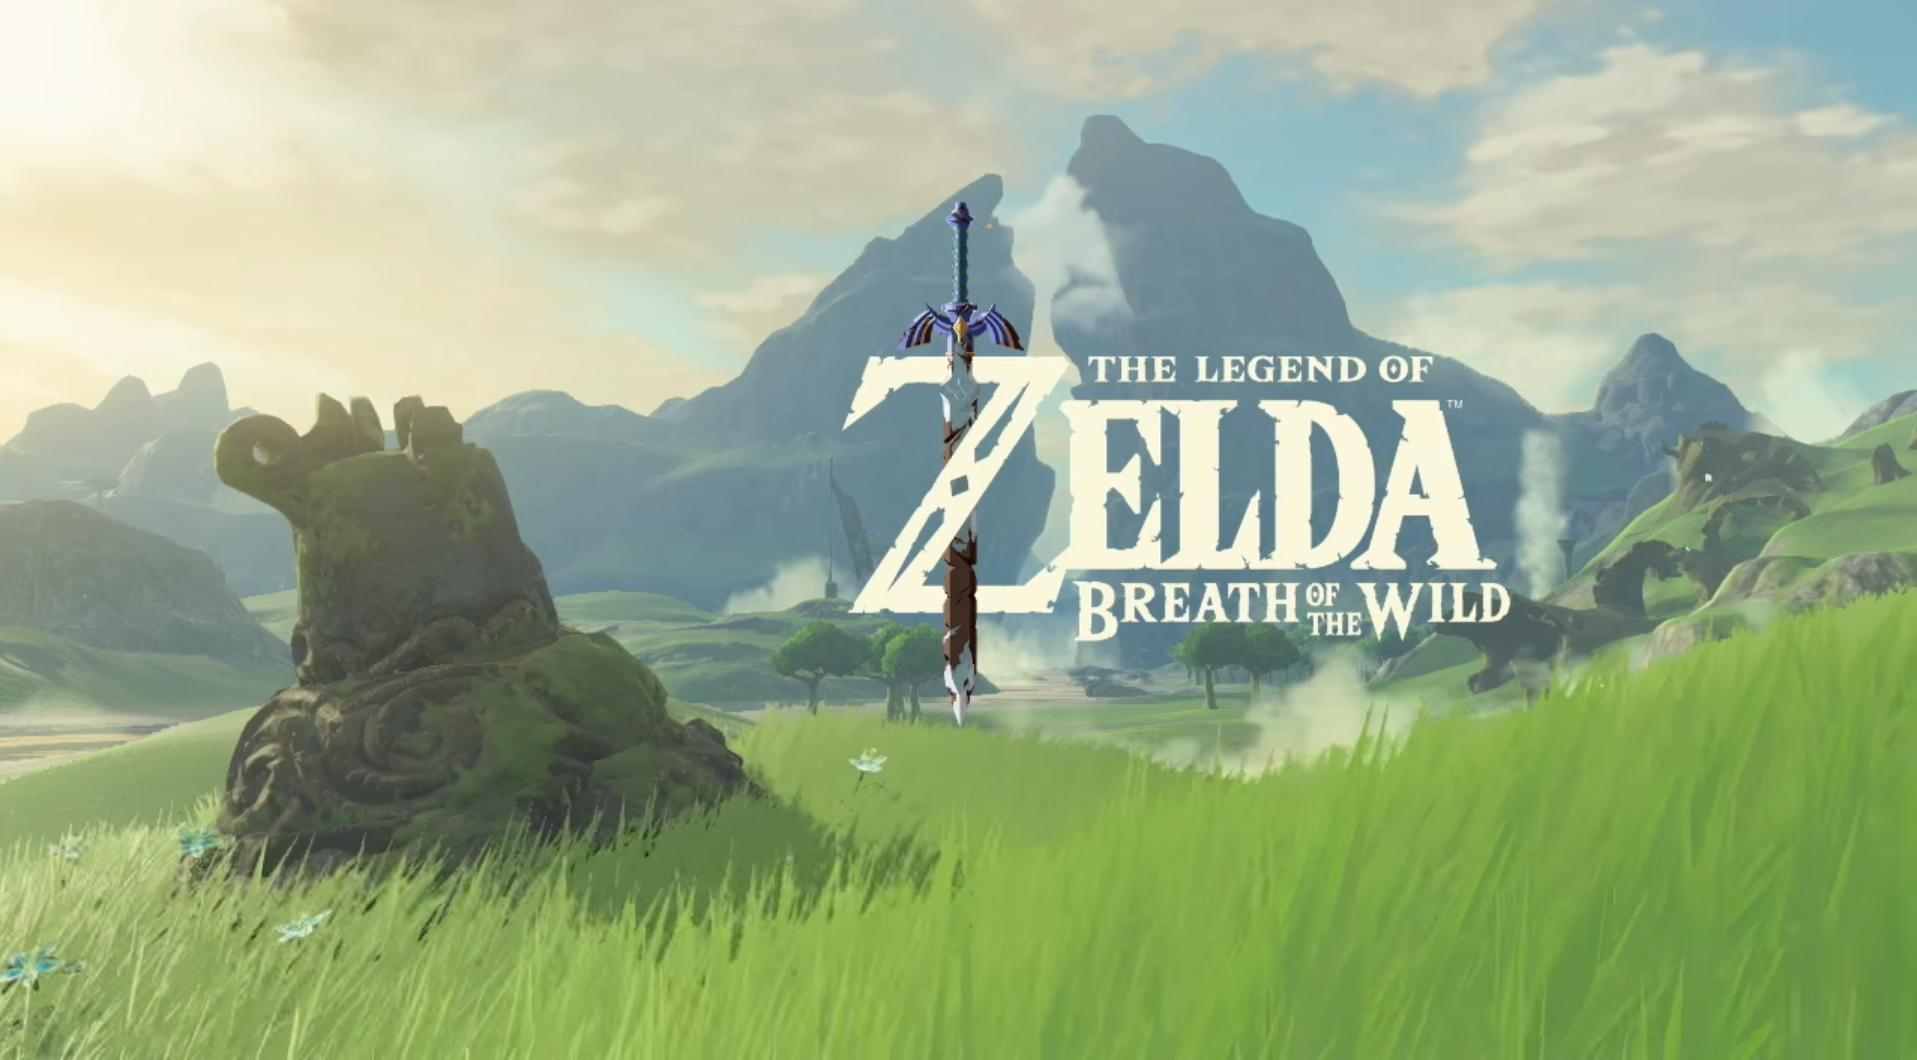 US: Amazon Has Cancelled Some Master Edition's Of Zelda: Breath Of The Wild